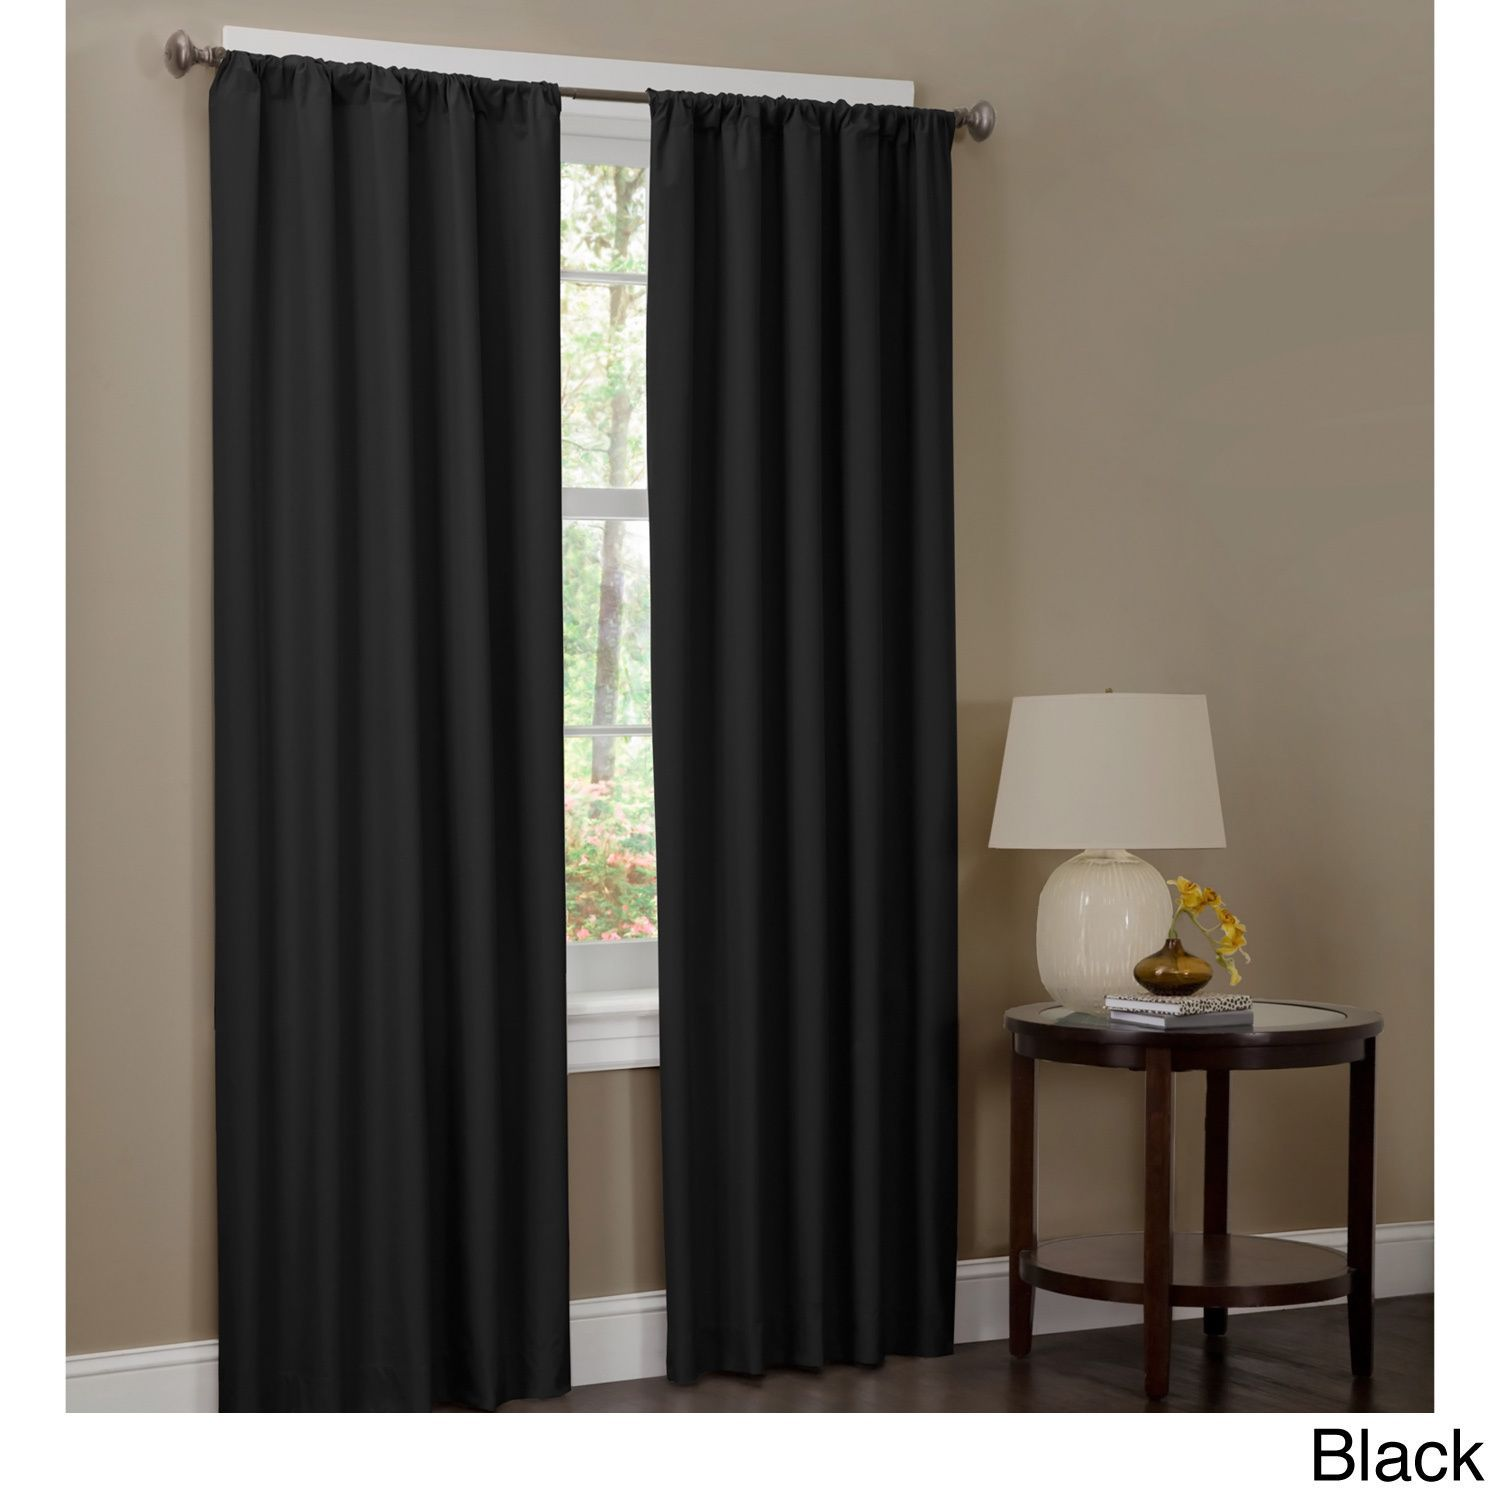 84 Inch Tan Henna Blackout Curtain Panel In 2020 Panel Curtains